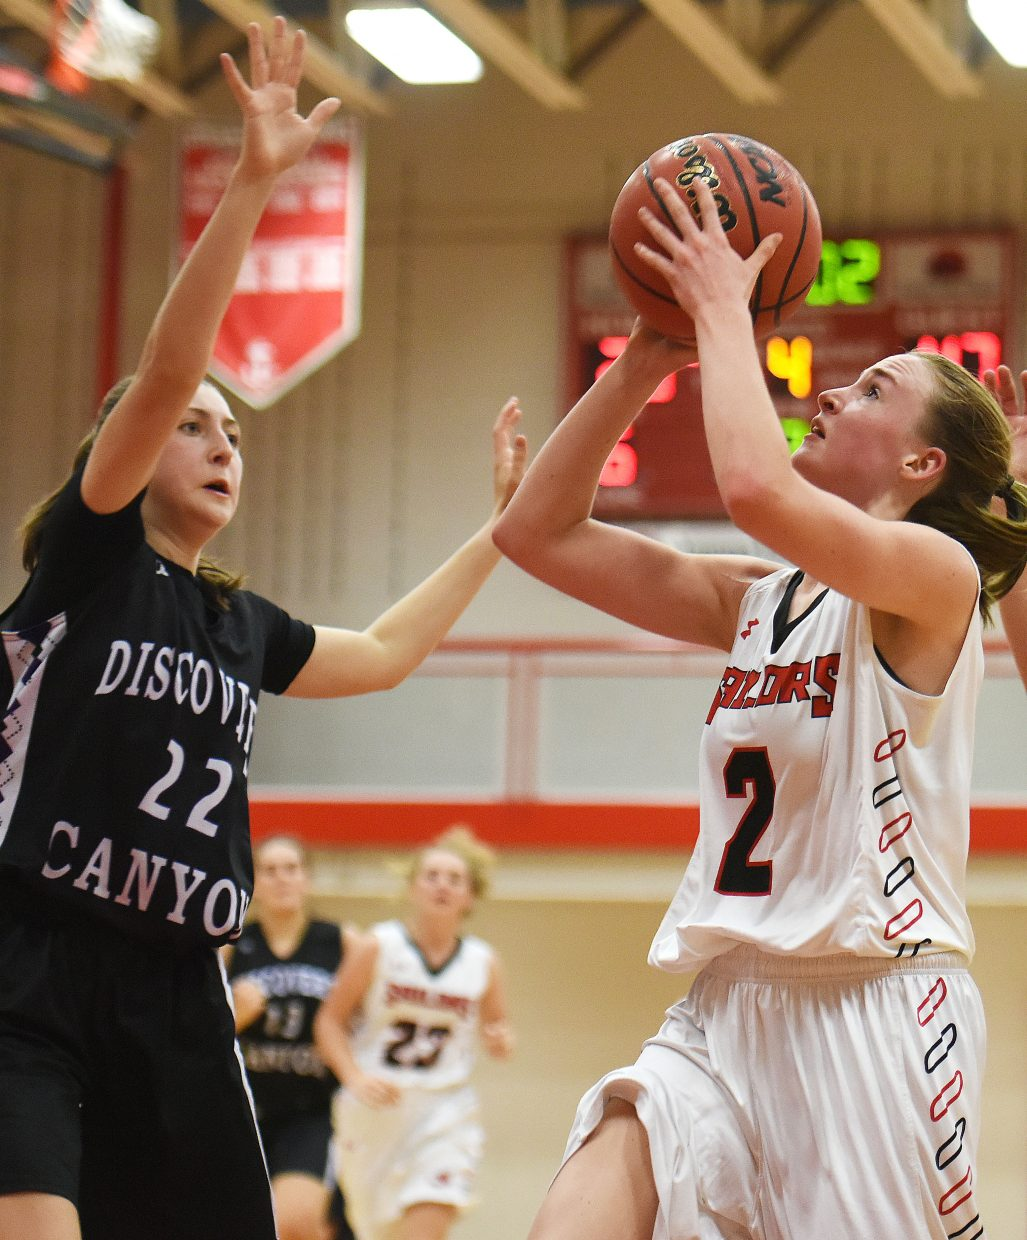 Steamboat Springs senior Raya Duryea goes up for a shot Thursday against Discovery Canyon in the first round of the Steamboat Shoot-Out tournament. Steamboat lost, 49-28. Duryea led her team with 18 points. Steamboat will play at 4:45 p.m. today against Prairie View.